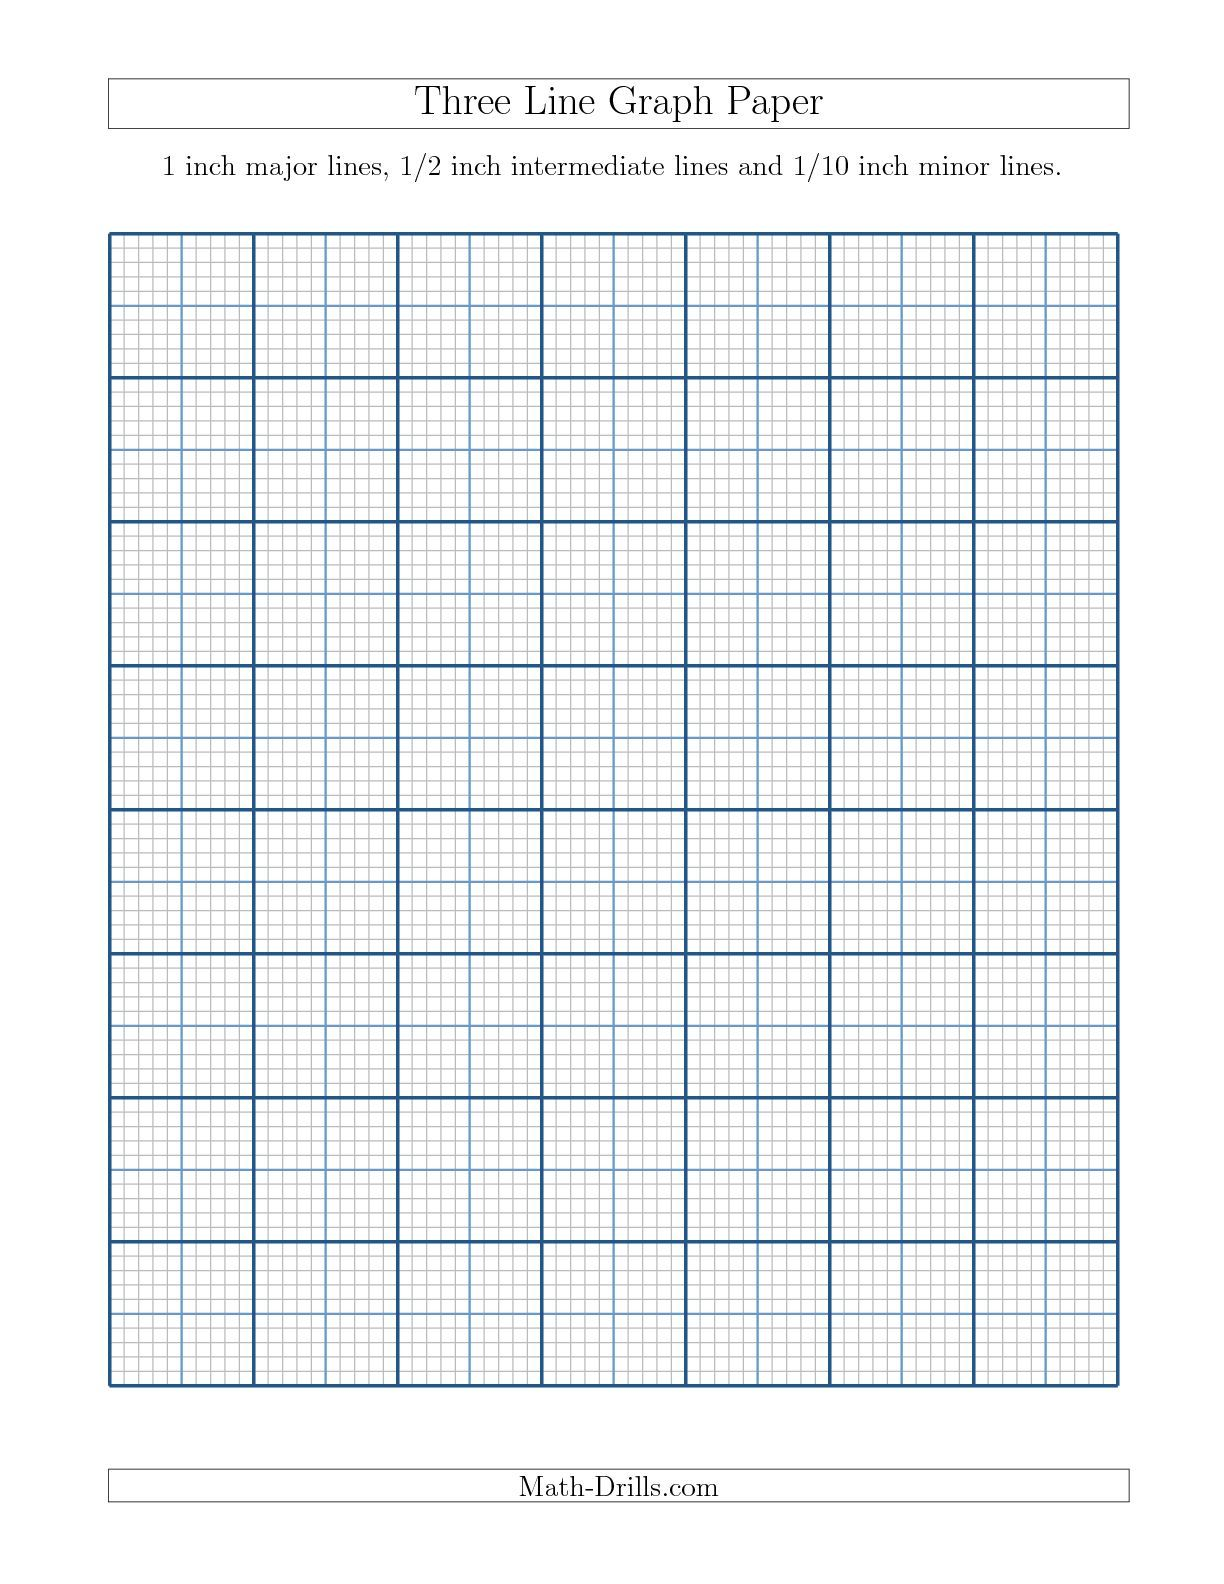 New 09 17 Three Line Graph Paper With 1 Inch Major Lines 1 2 Inch Intermediate Lines And